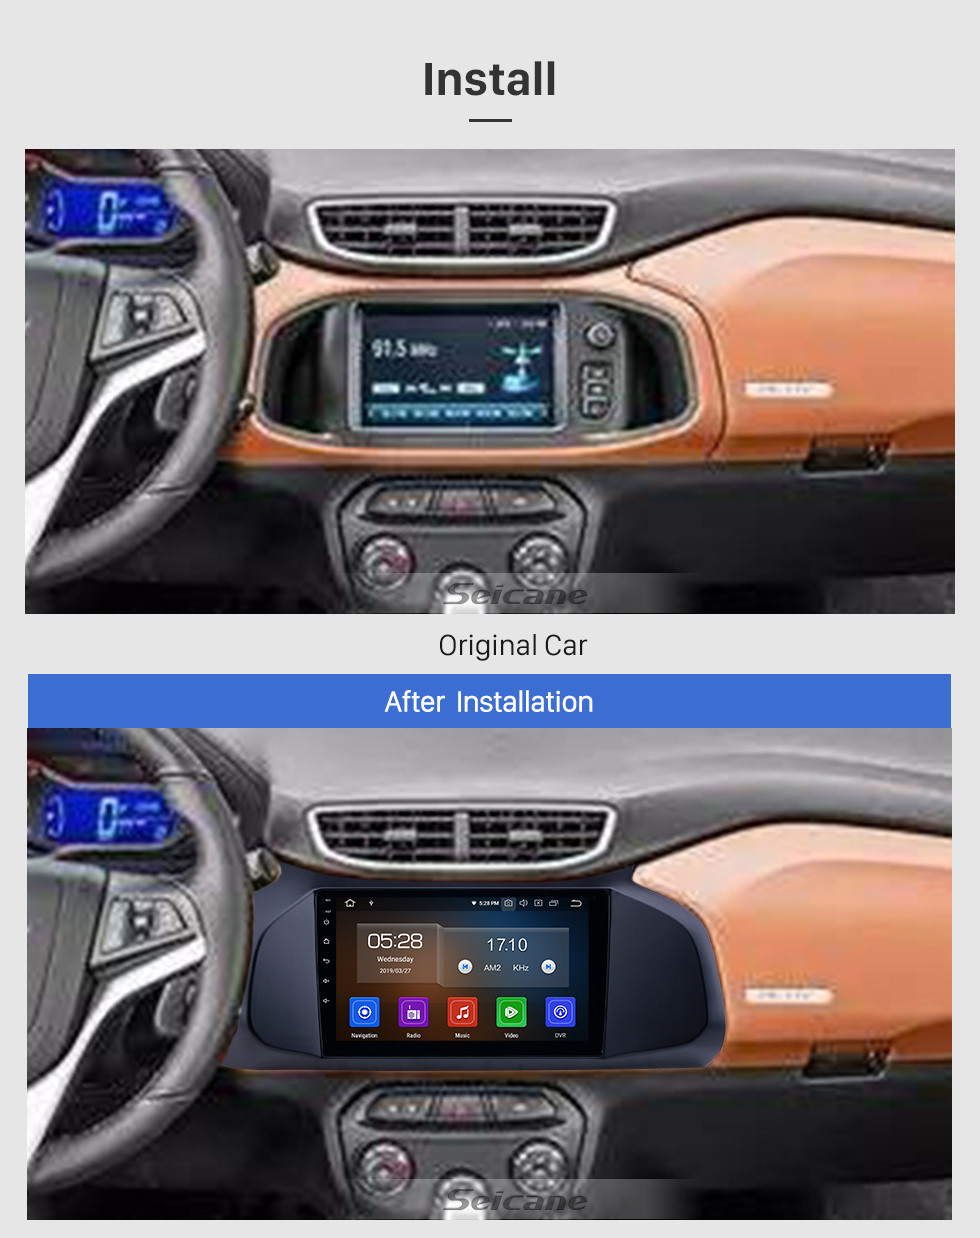 Seicane 9 inch Android 10.0 Radio for 2012-2019 Chevy Chevrolet Onix Bluetooth WIFI USB HD Touchscreen GPS Navigation Carplay support DAB+ DVR